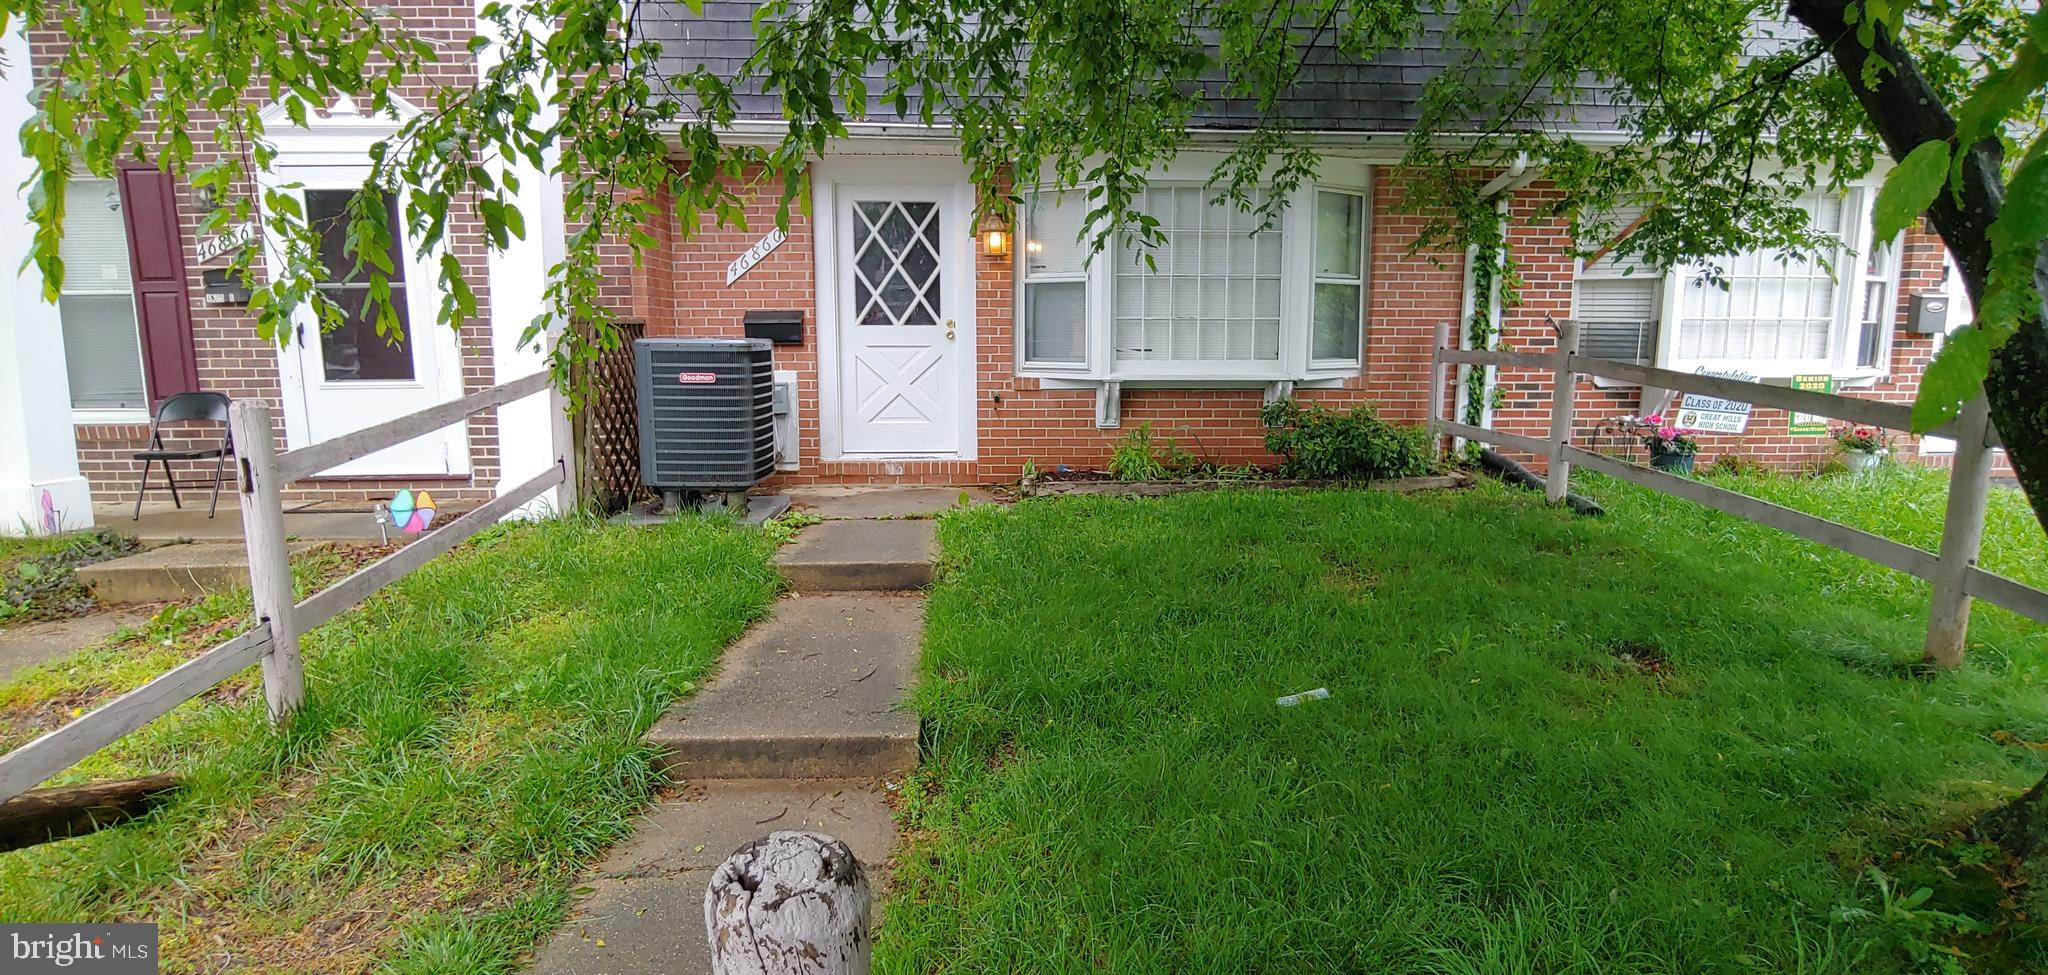 Rare opportunity to purchase a home in great condition for less than you would pay in rent. This 3 b